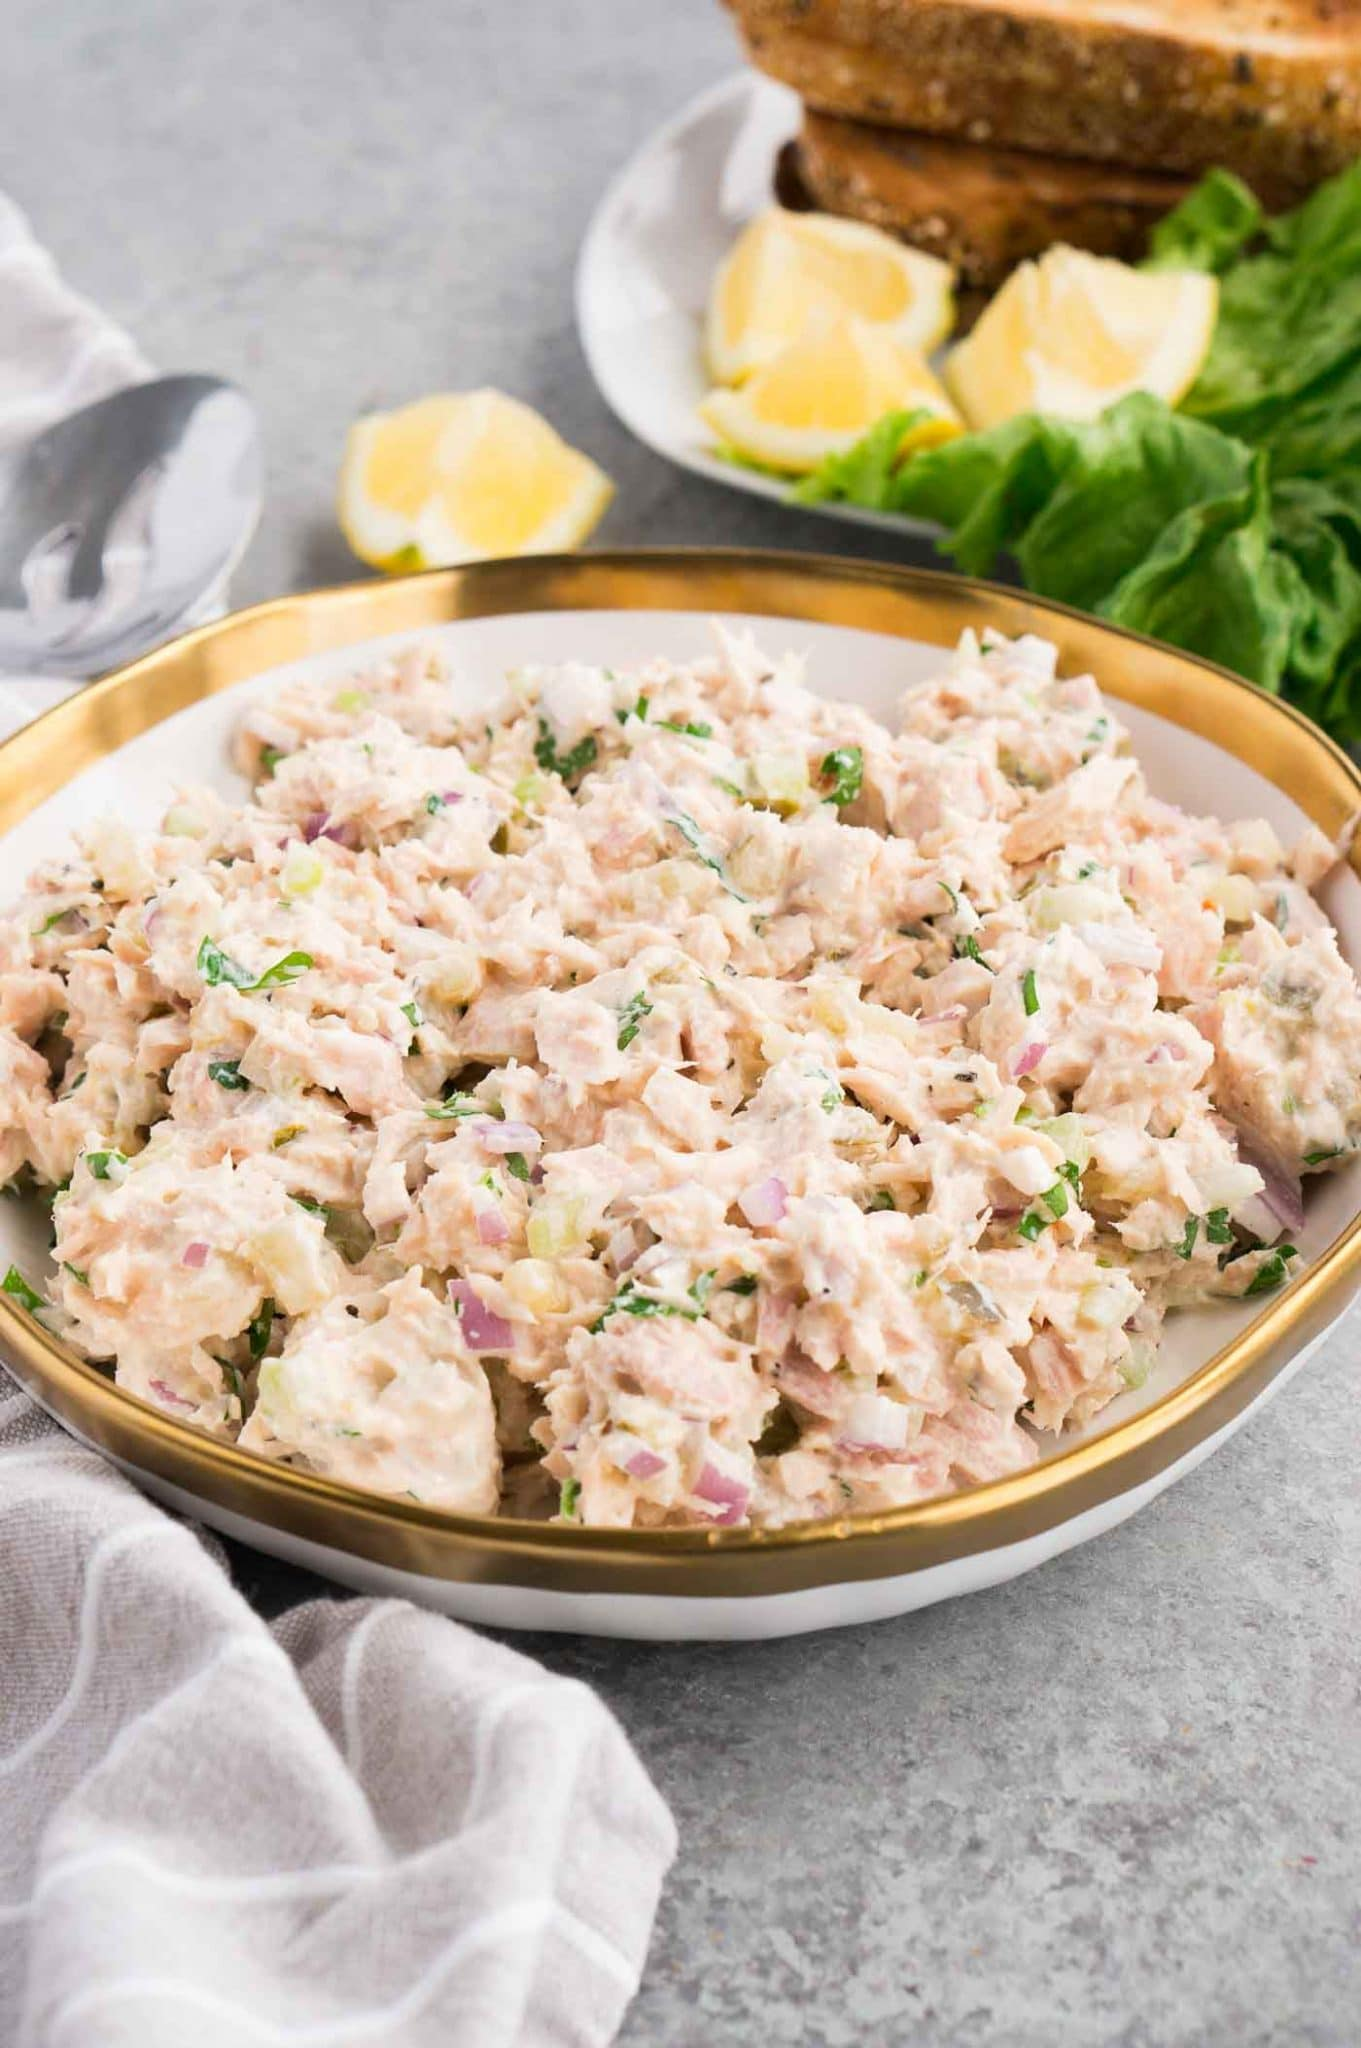 tuna salad for sandwiches in a bowl